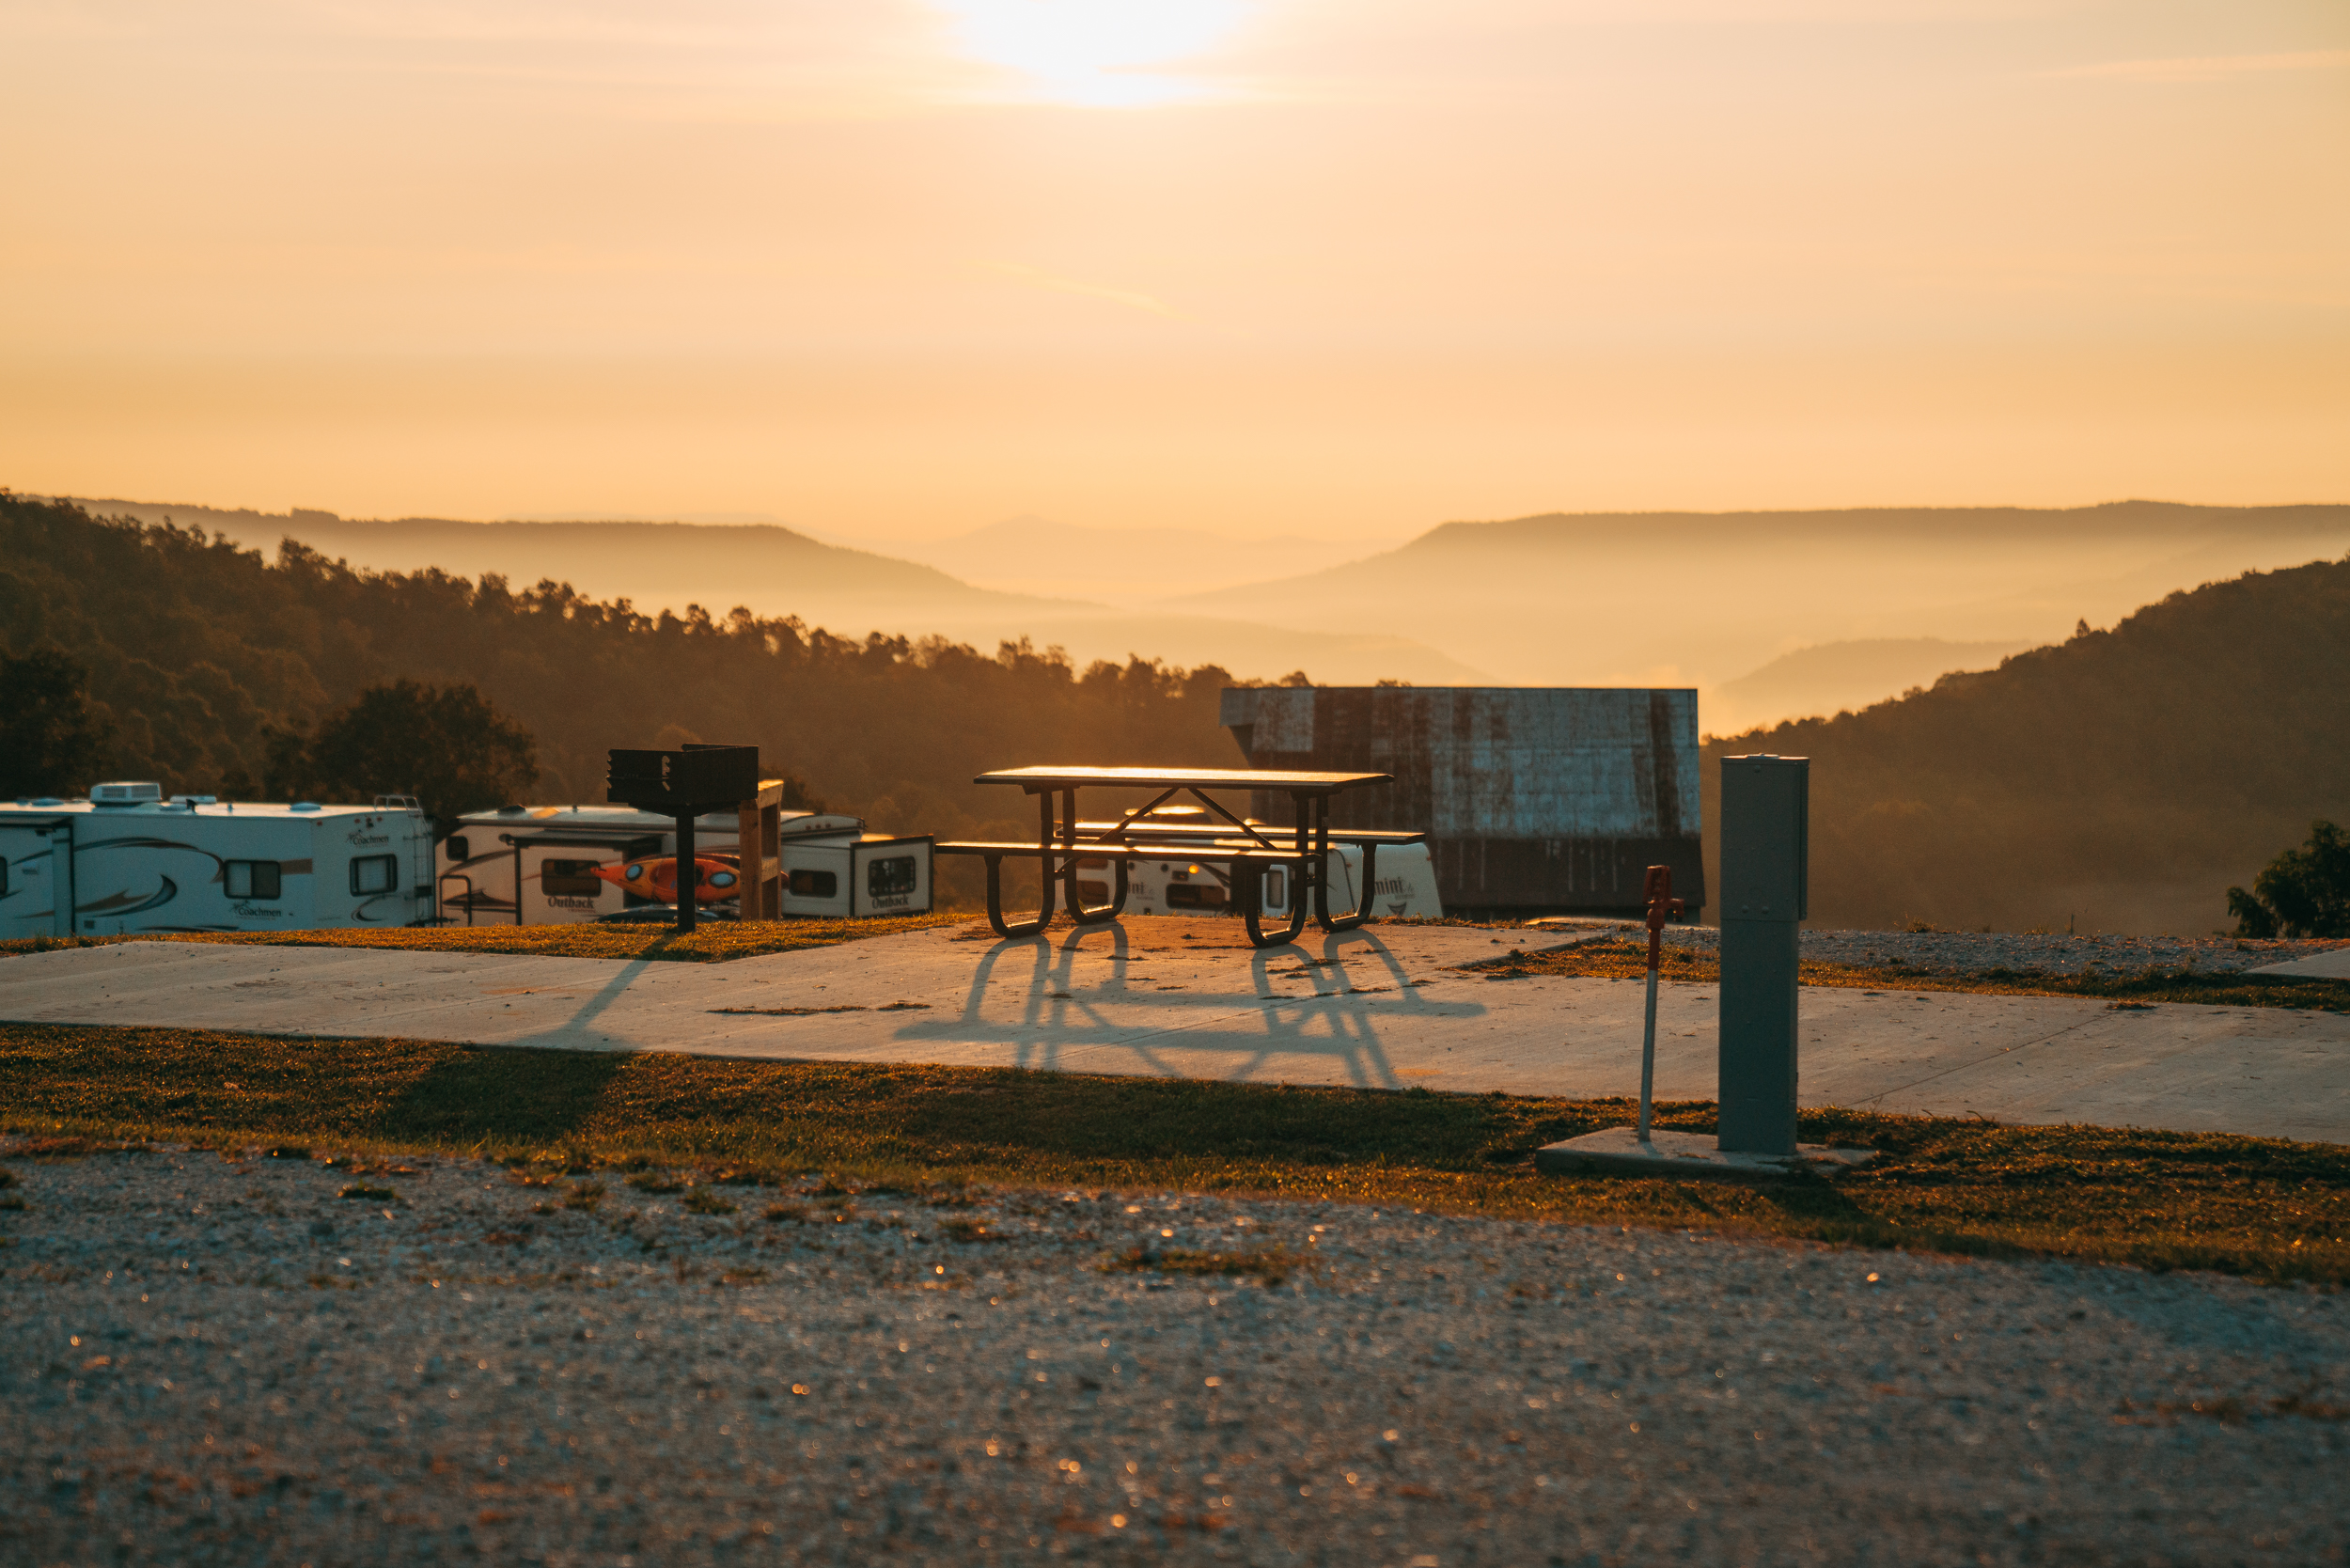 Seating area in the RV park overlooking Ozark Mountains